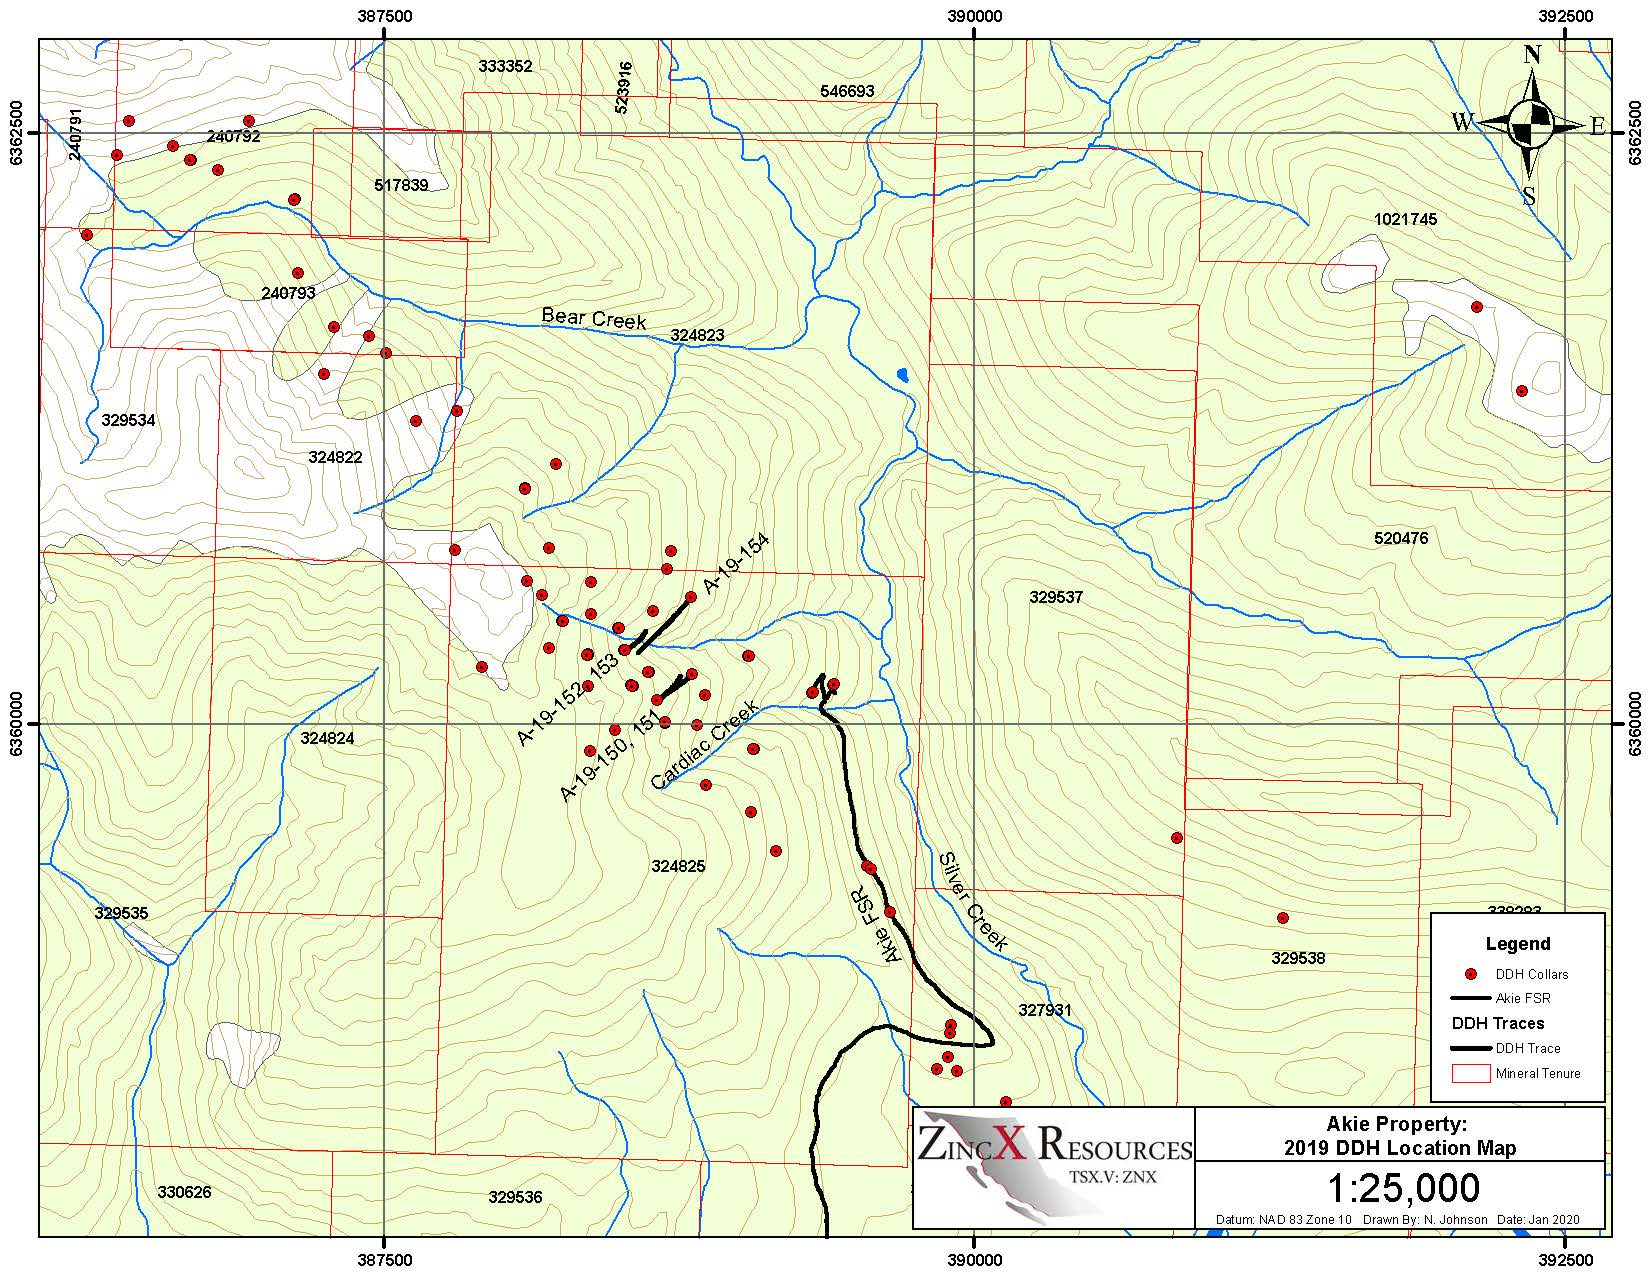 Planview Map with the 2017 Drilling